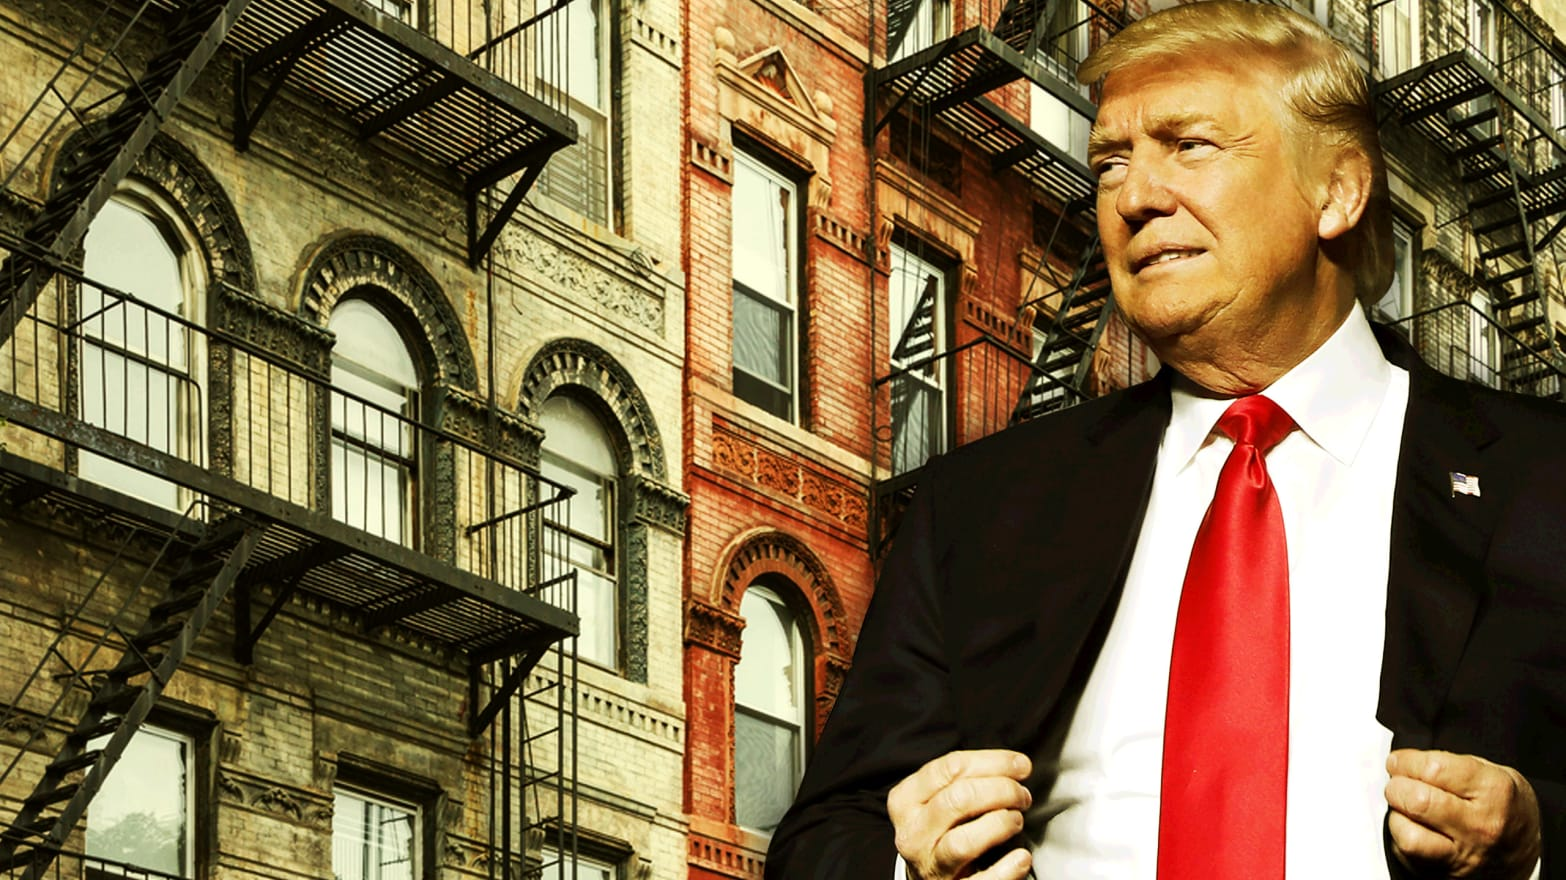 Progressives Have Let Inner Cities Fail for Decades. President Trump Could Change That.